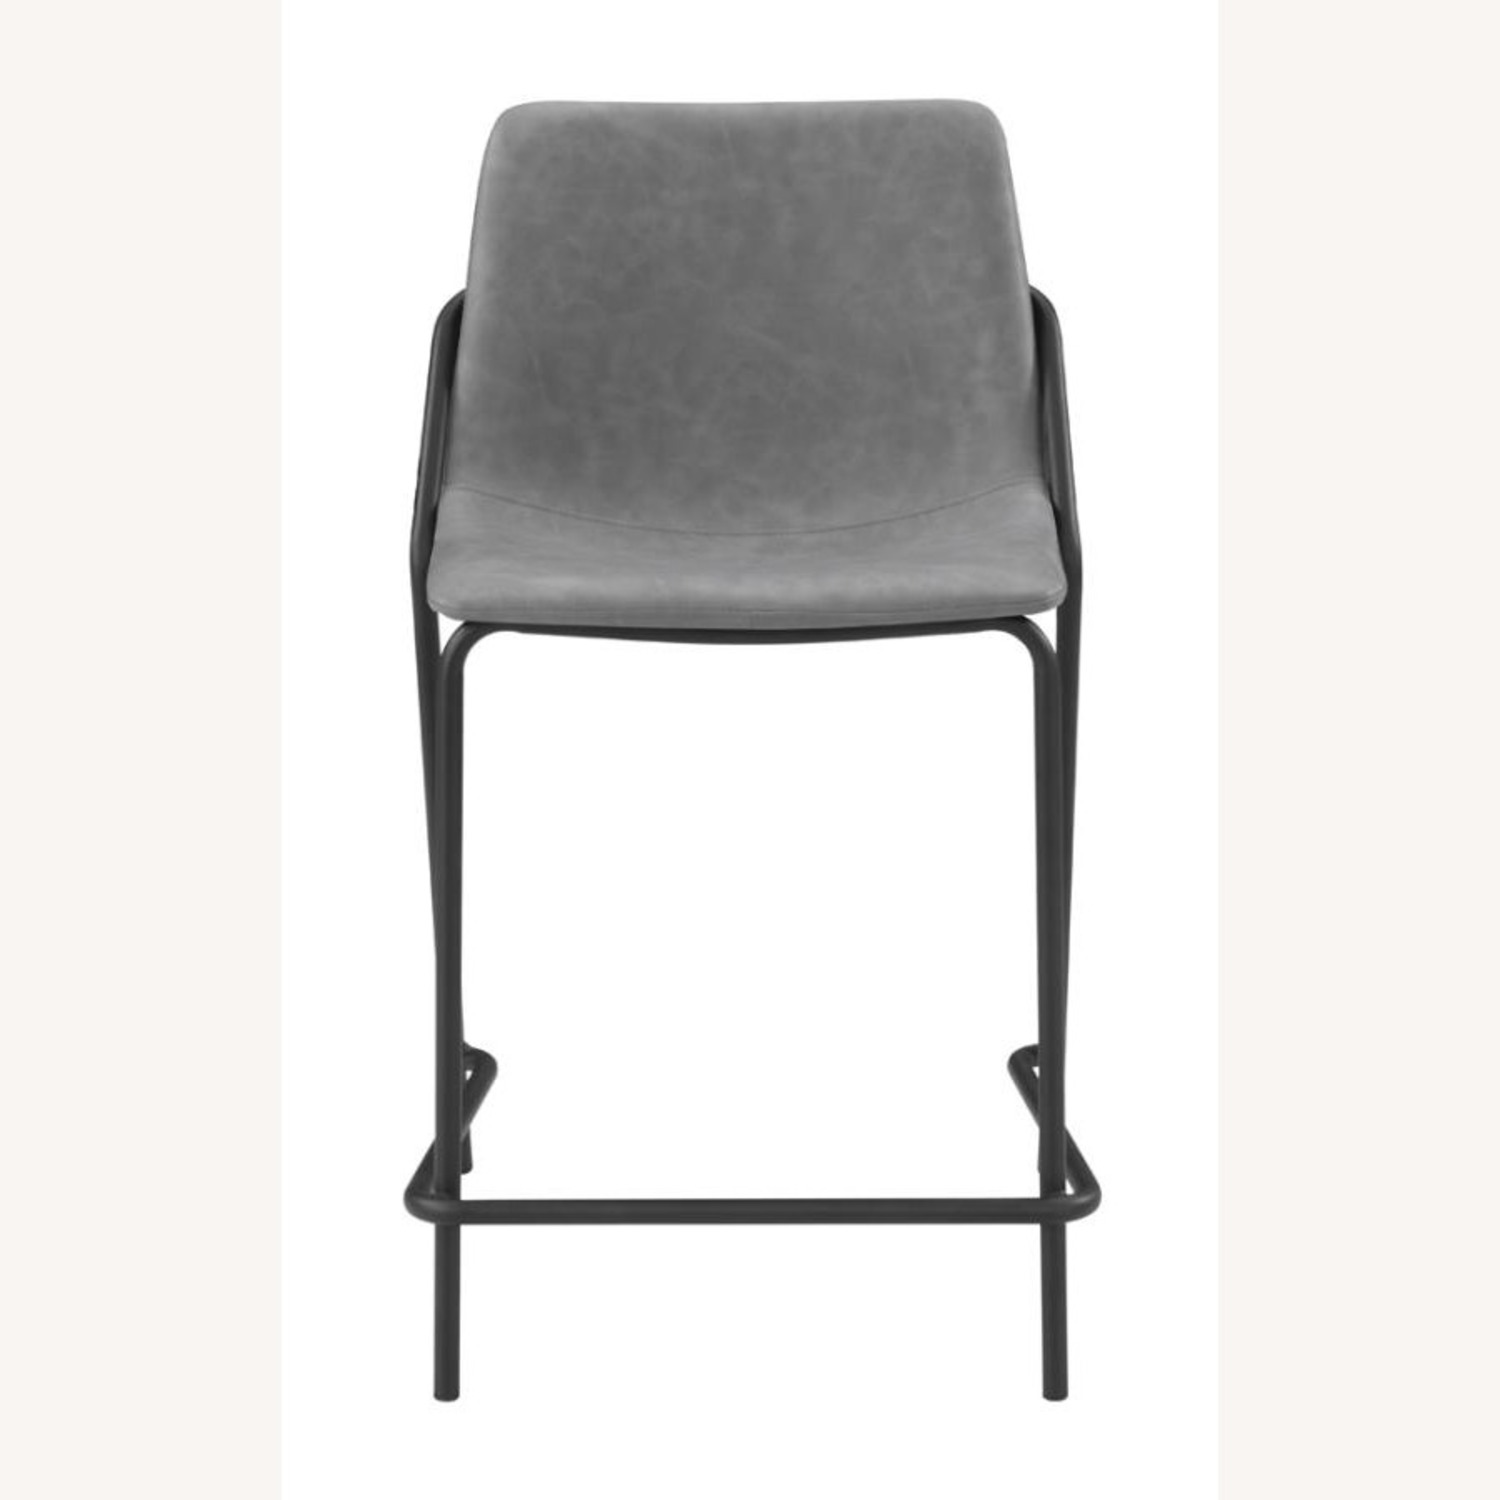 Counter Stool In Grey Leather & Black Metal Finish - image-1